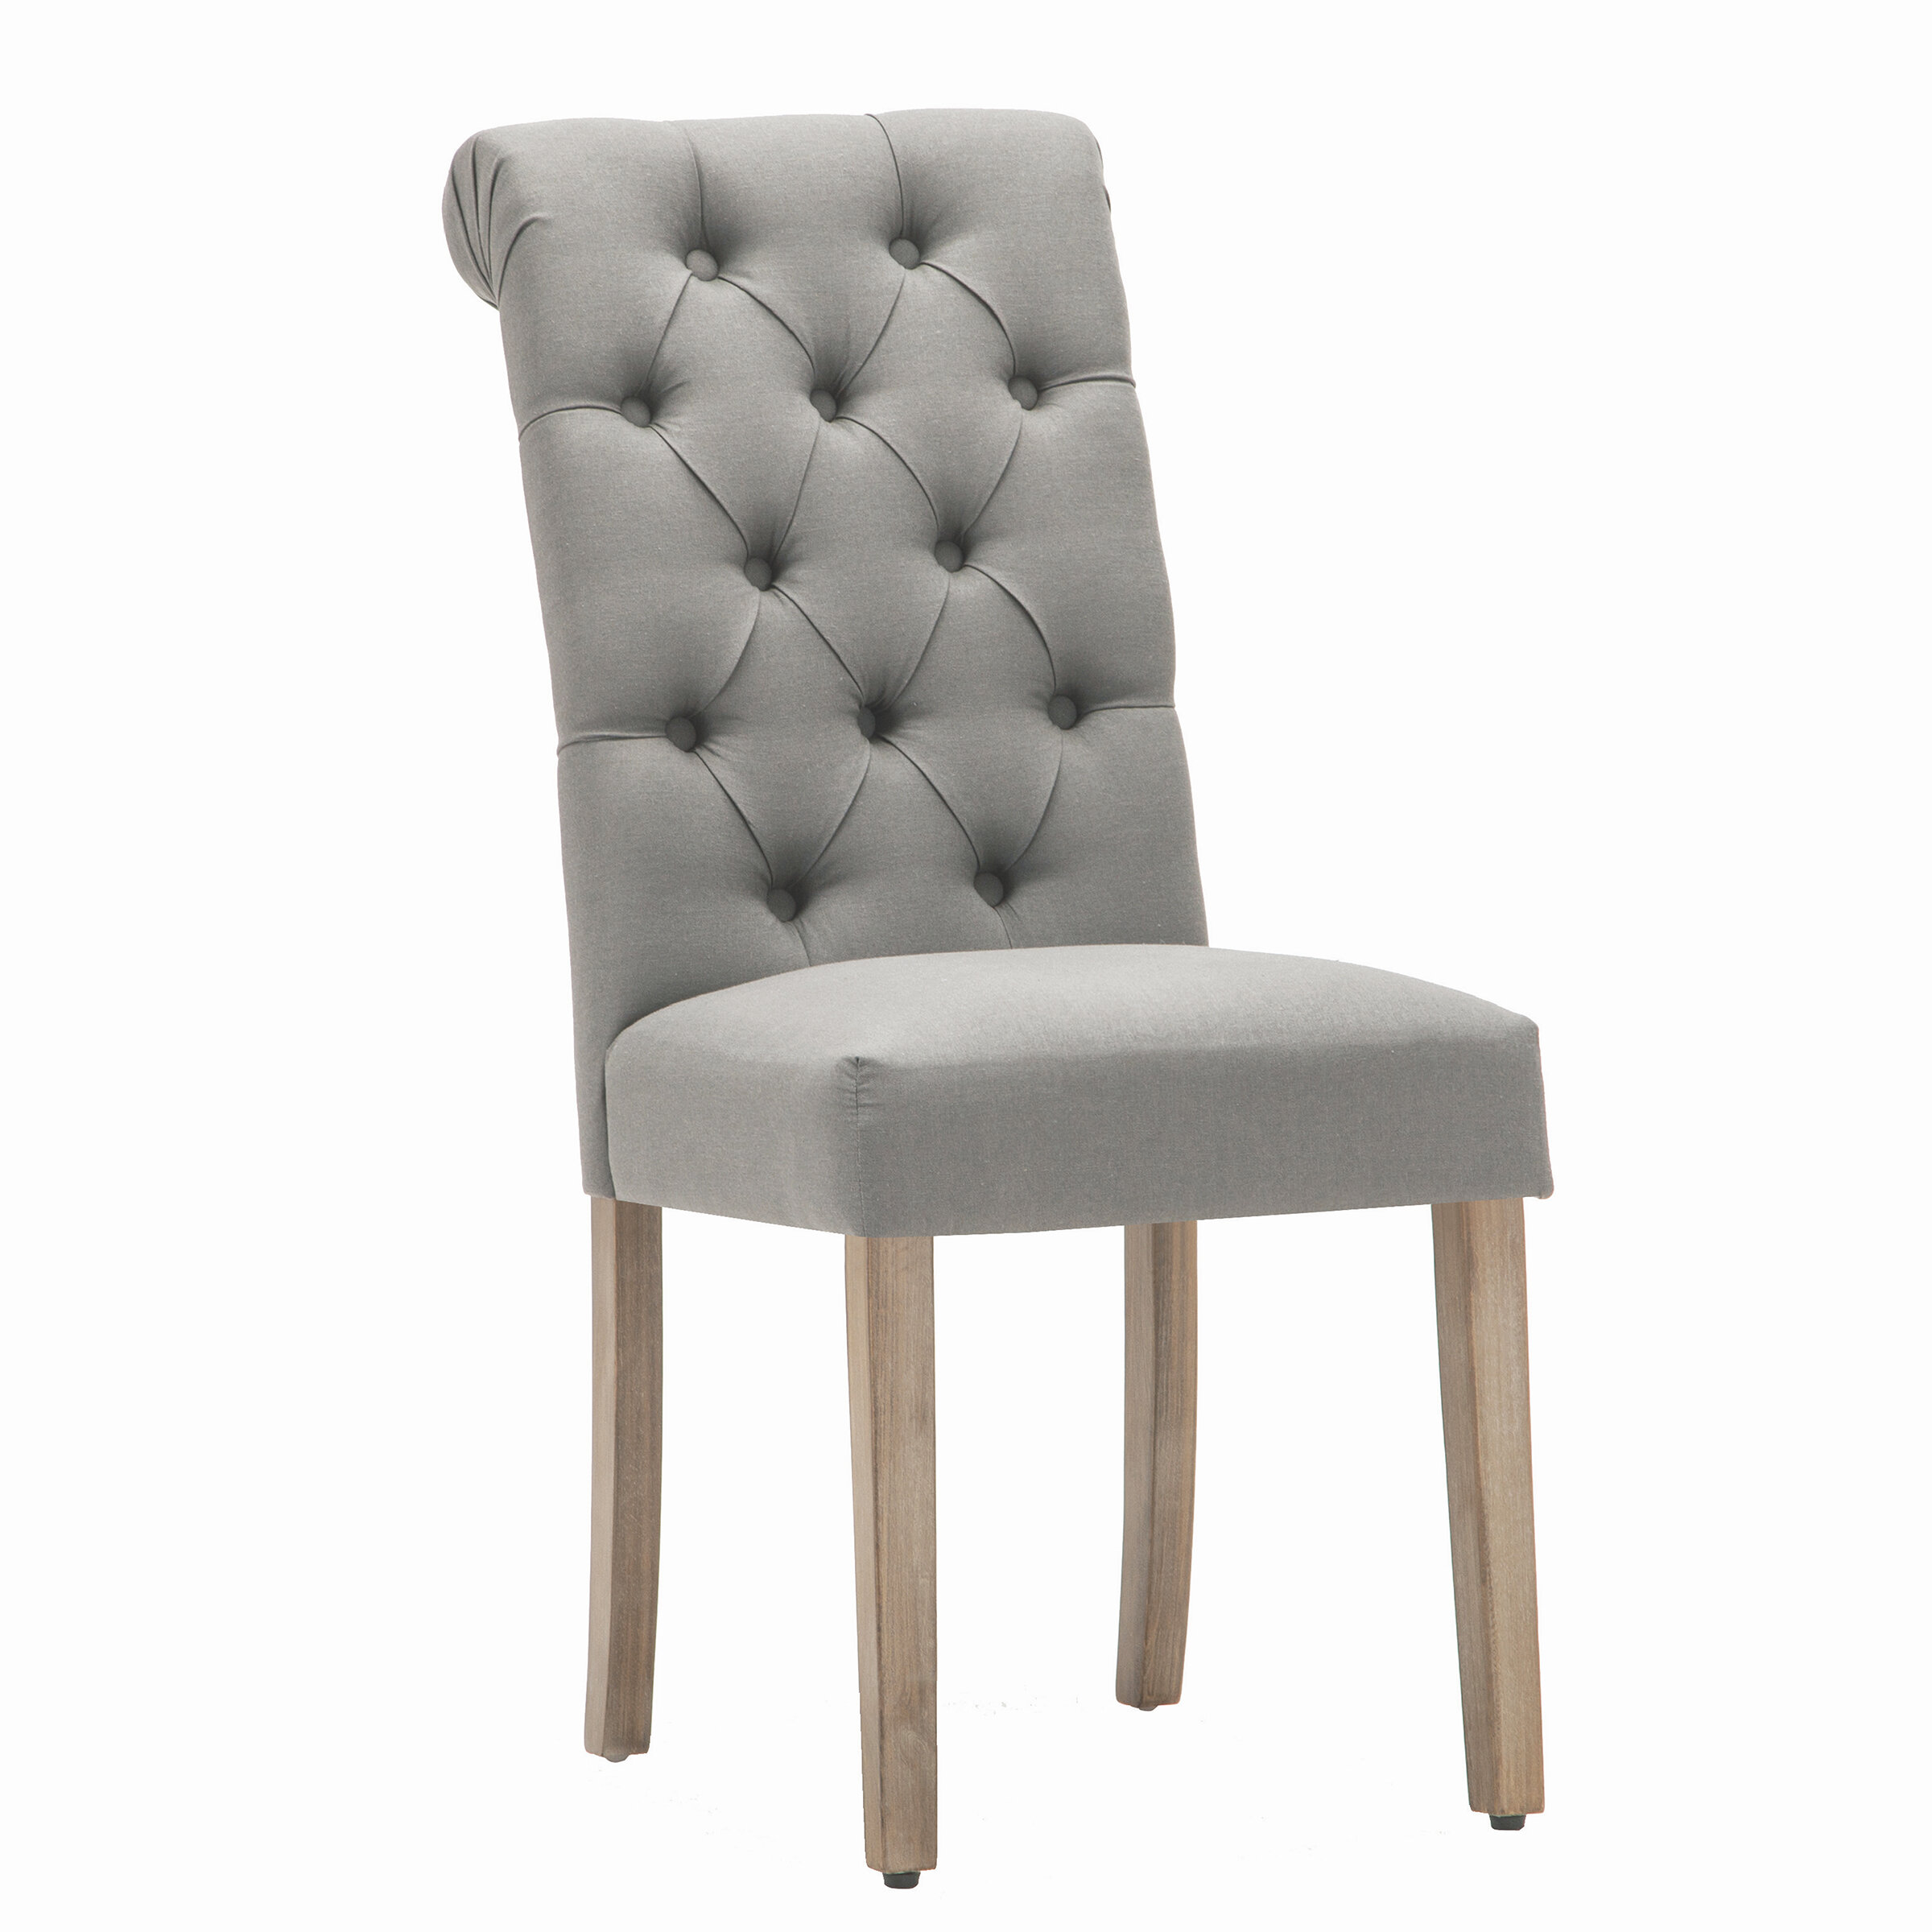 Ansonia roll top tufted modern upholstered dining chair reviews joss main